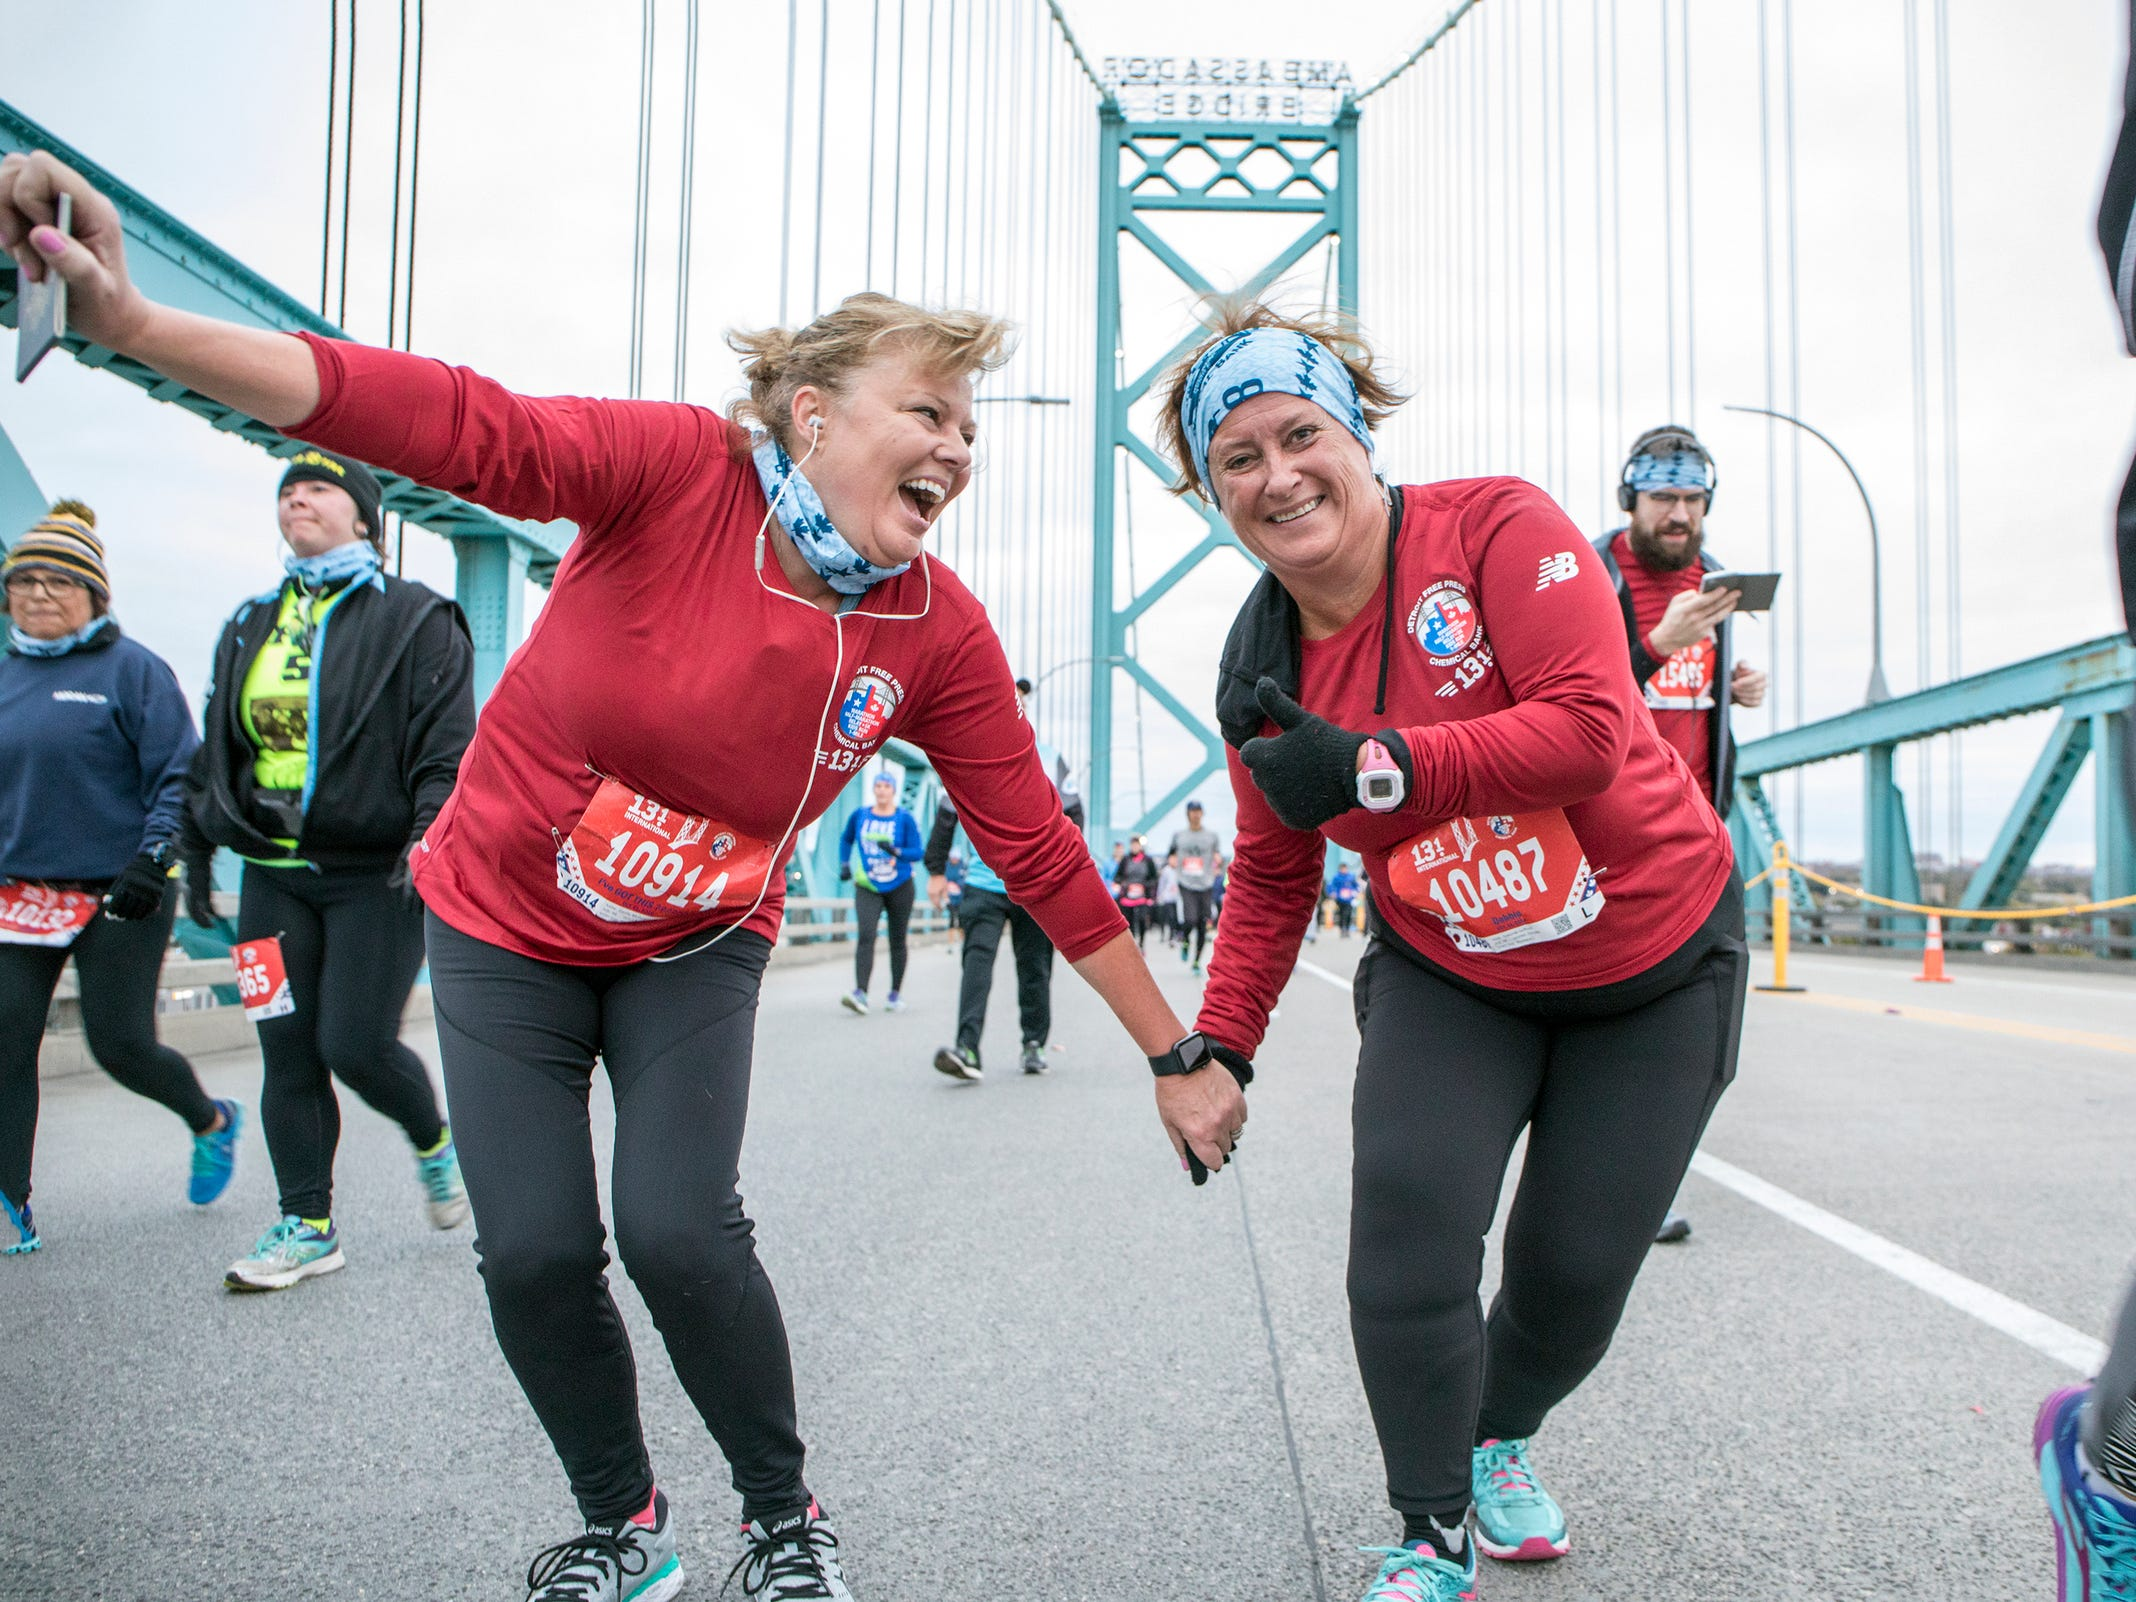 From left, Candy McGuigan, 55 of Blenheim, Canada and Deborah Griffore, 56 of Chatham, Ontario cross the Ambassador Bridge during the 41st Annual Detroit Free Press/Chemical Bank Marathon in Detroit on Sunday, Oct. 21, 2018.